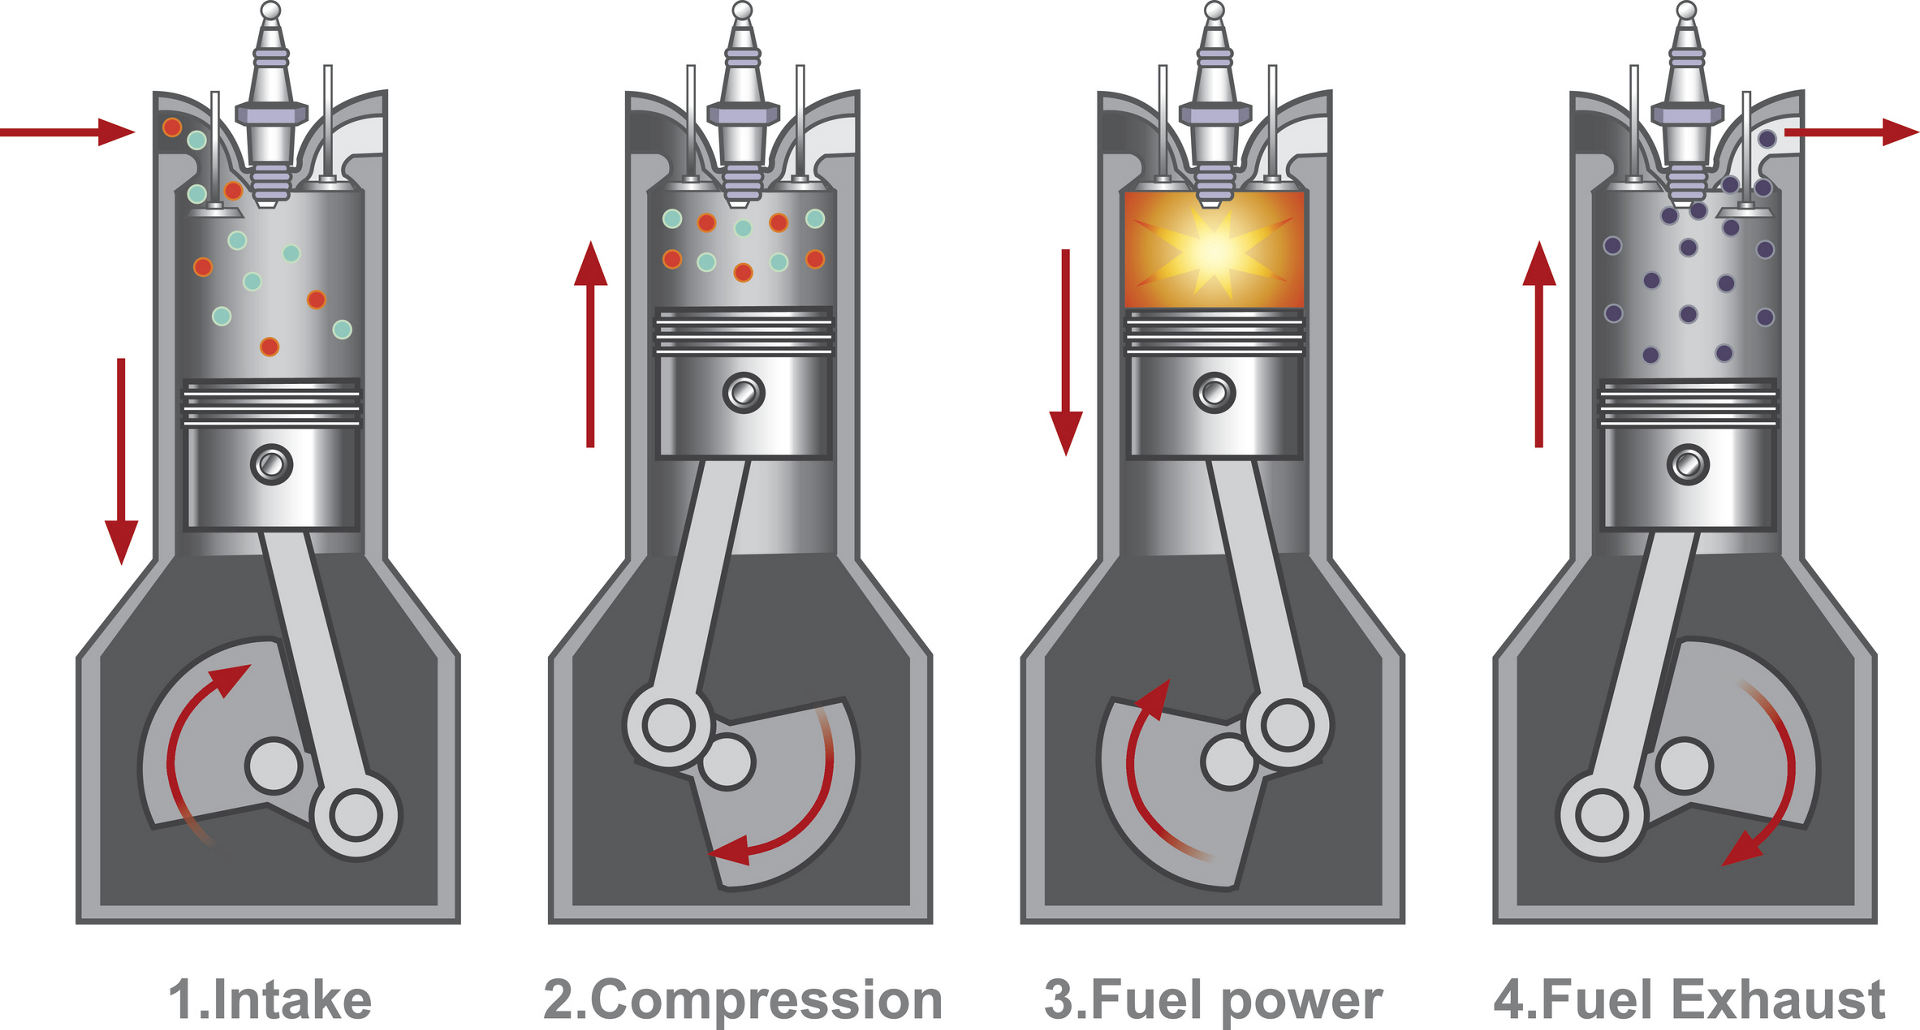 An internal combustion engine is a heat engine where the combustion of a fuel occurs with an oxidizer in a combustion chamber that is an integral part of the working fluid flow circuit. Illustration, Vector graphic.